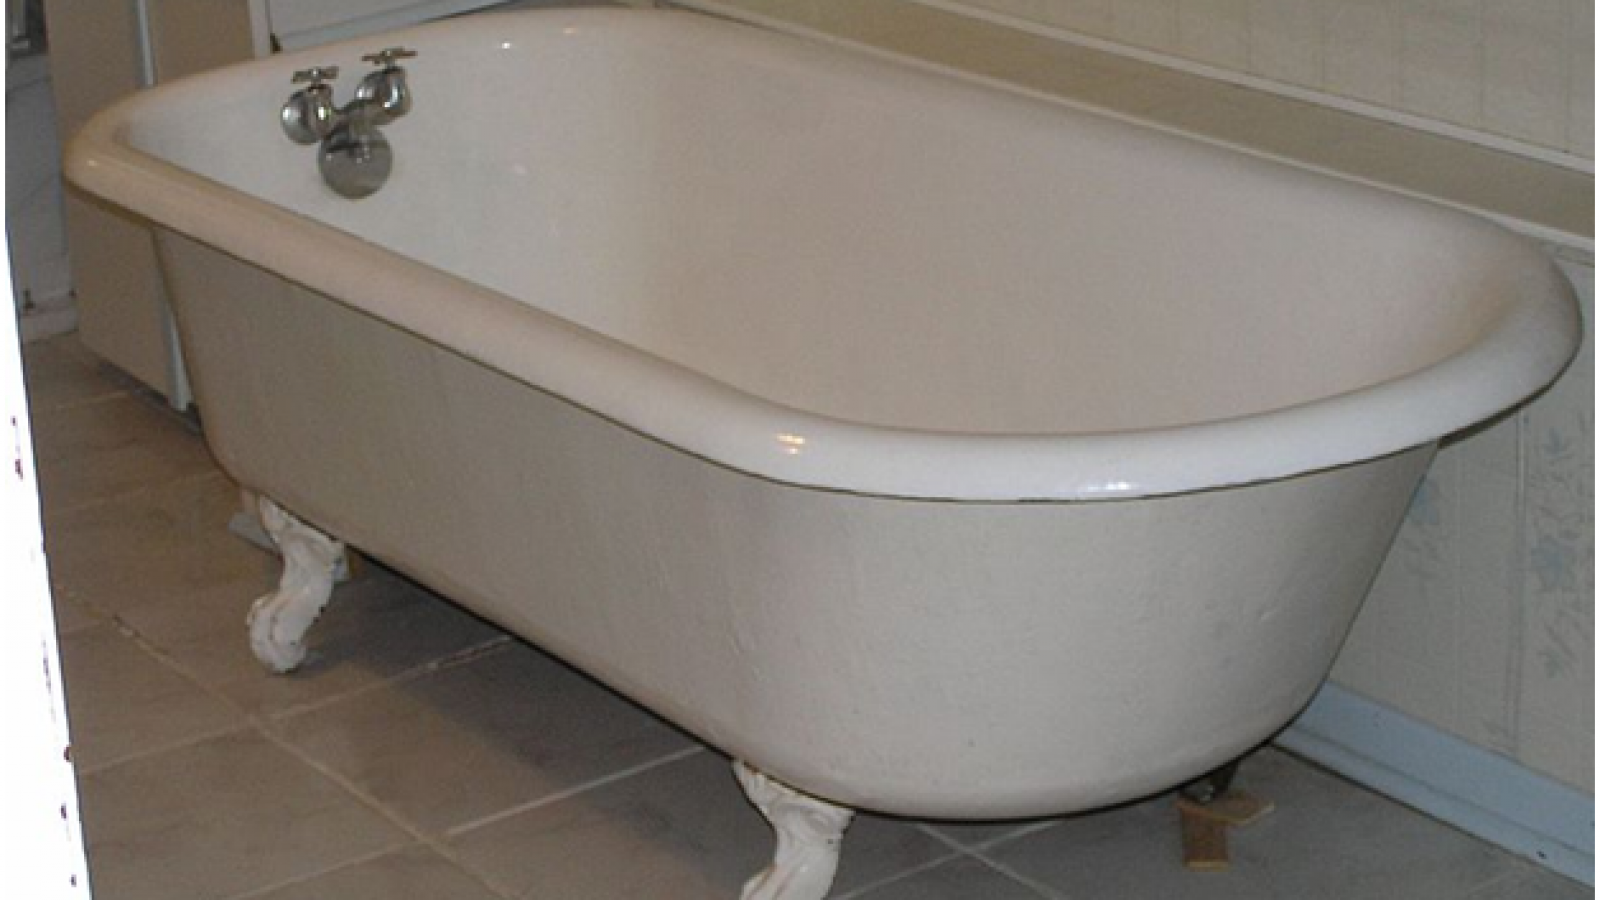 Cleaning a Cast Iron Bath